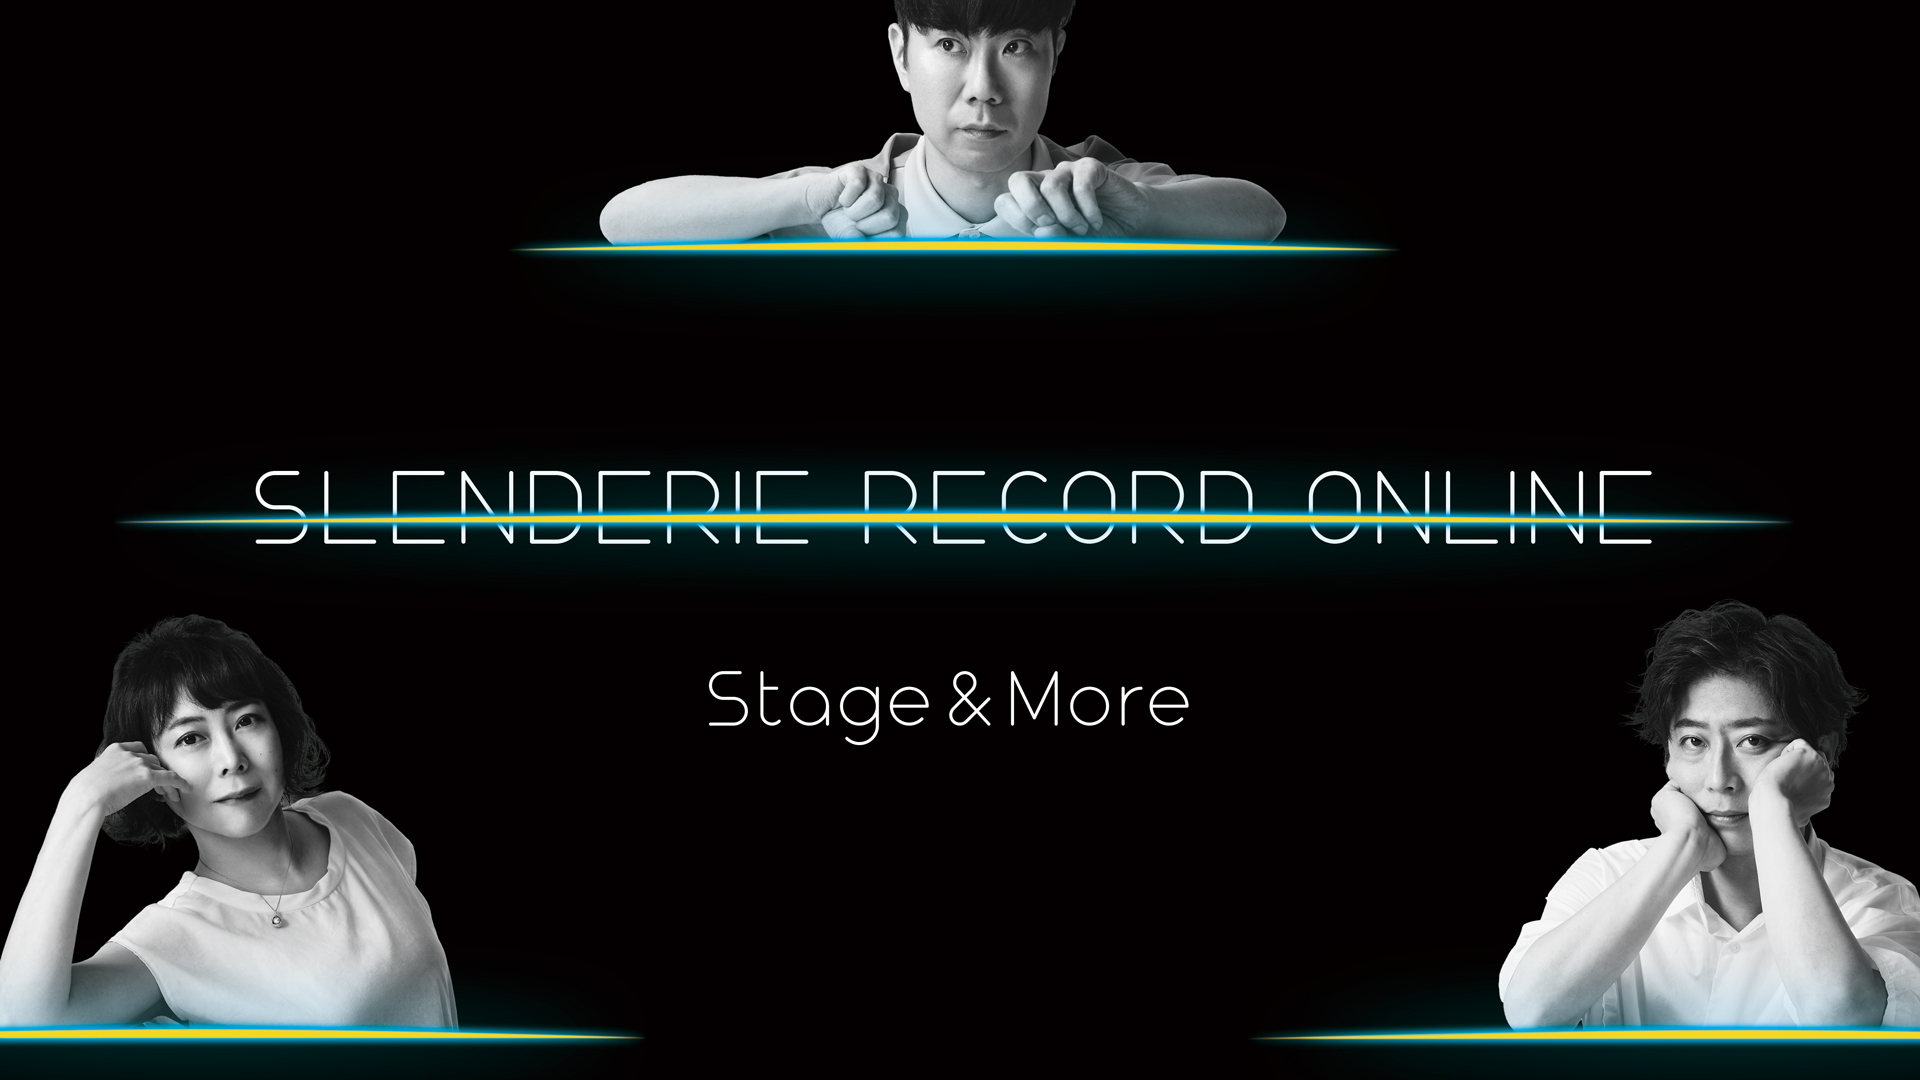 SLENDERIE RECORD Online Stage & More | 後藤輝基(フットボールアワー) 椿鬼奴 藤井隆(AI)